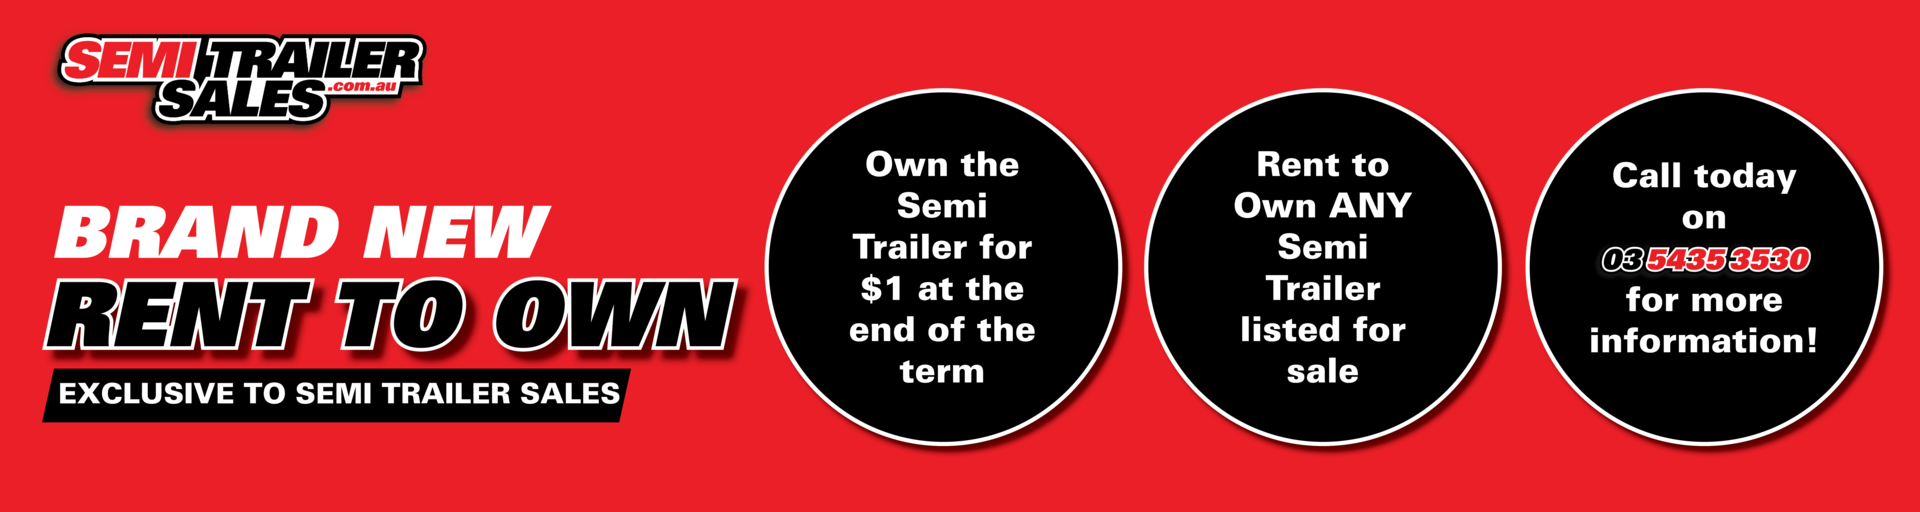 Rent to Own with Semi Trailer Sales Pty Ltd